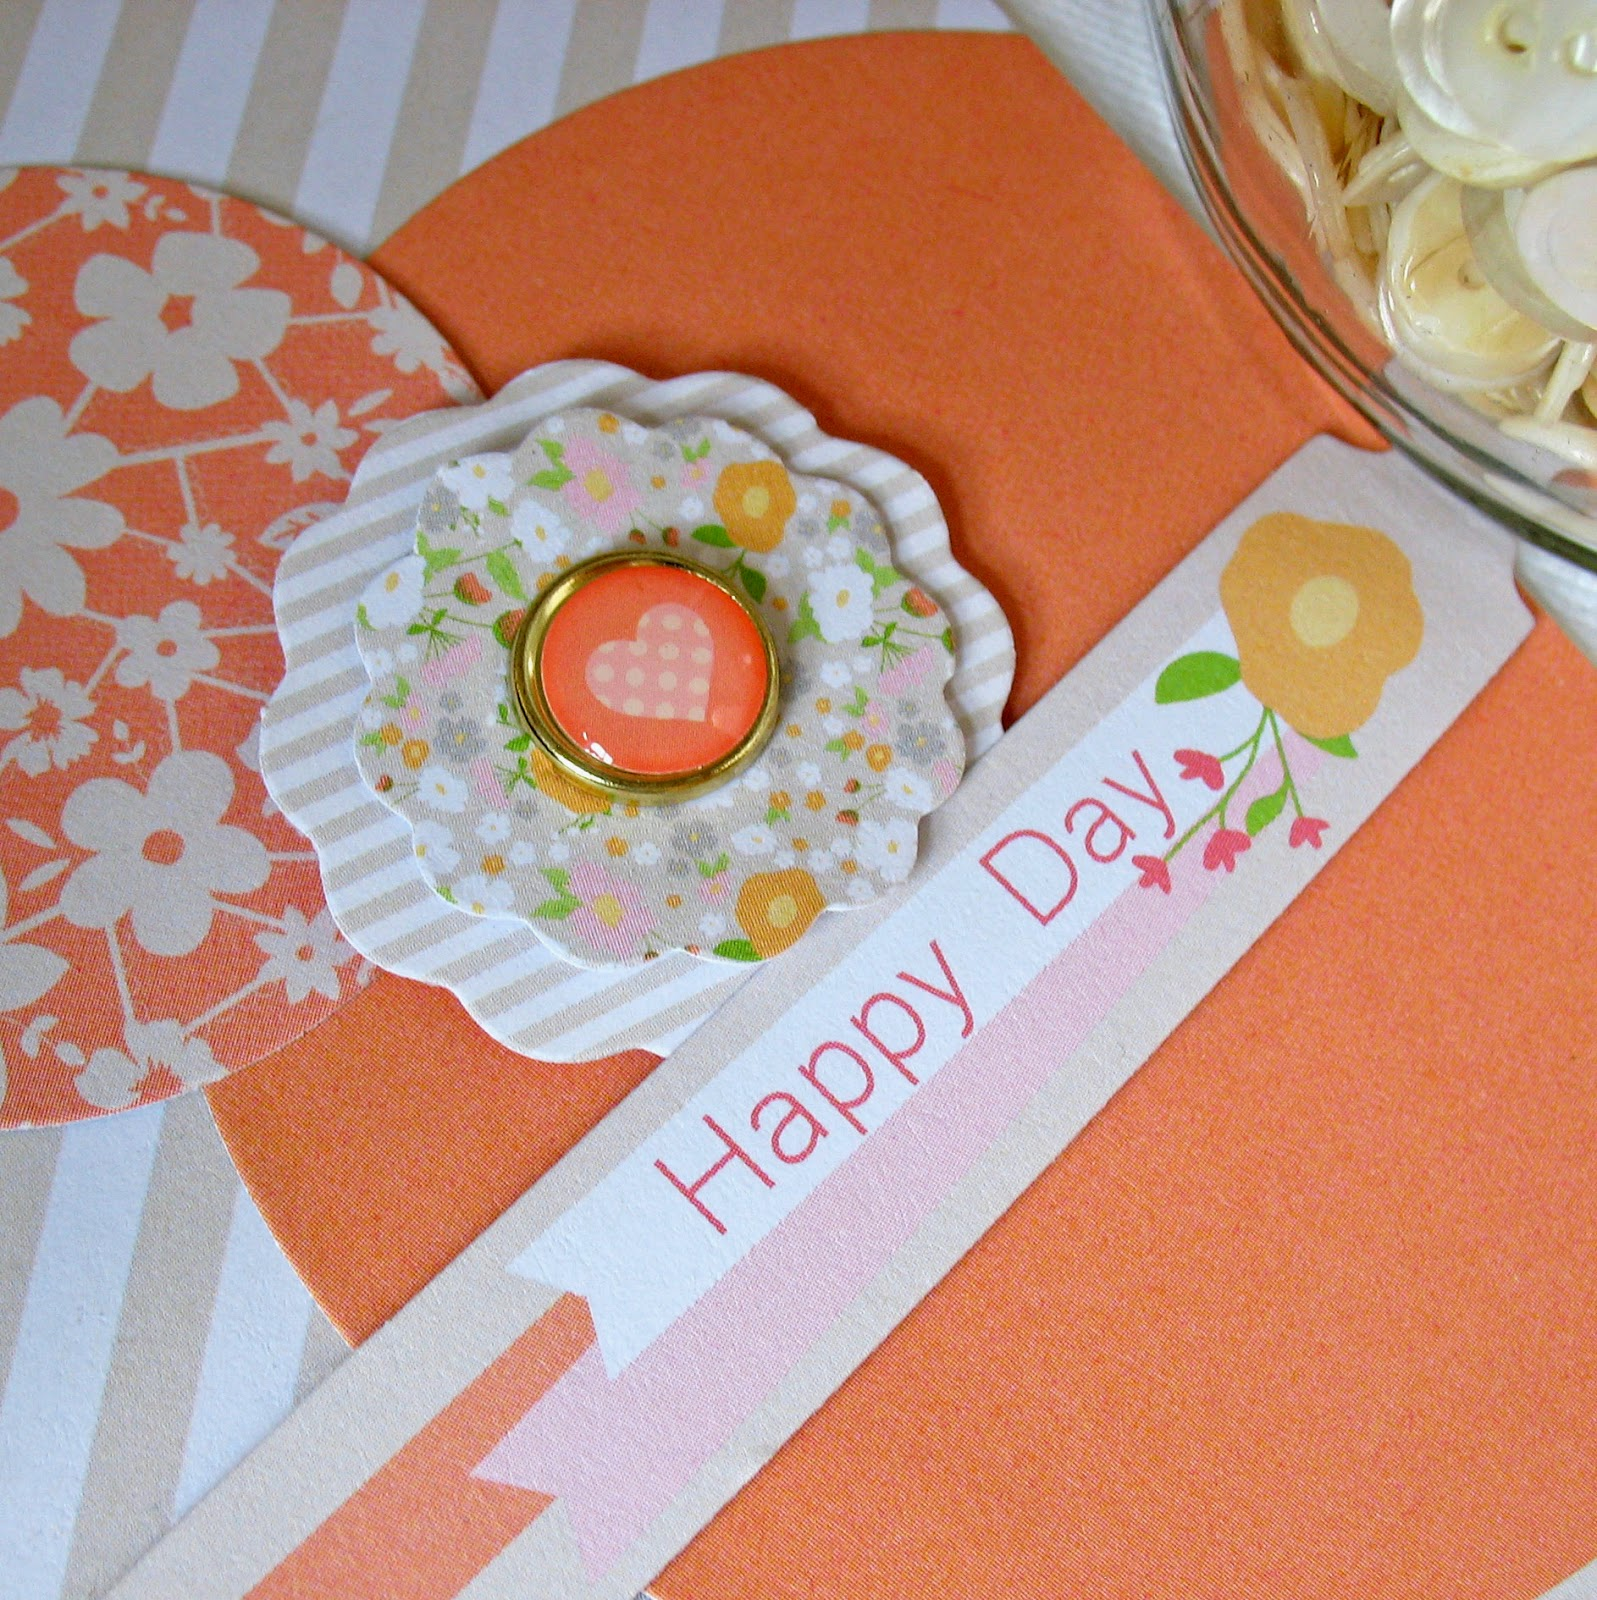 Kathy Martin Chickaniddy Crafts August Pinterest Card close-up